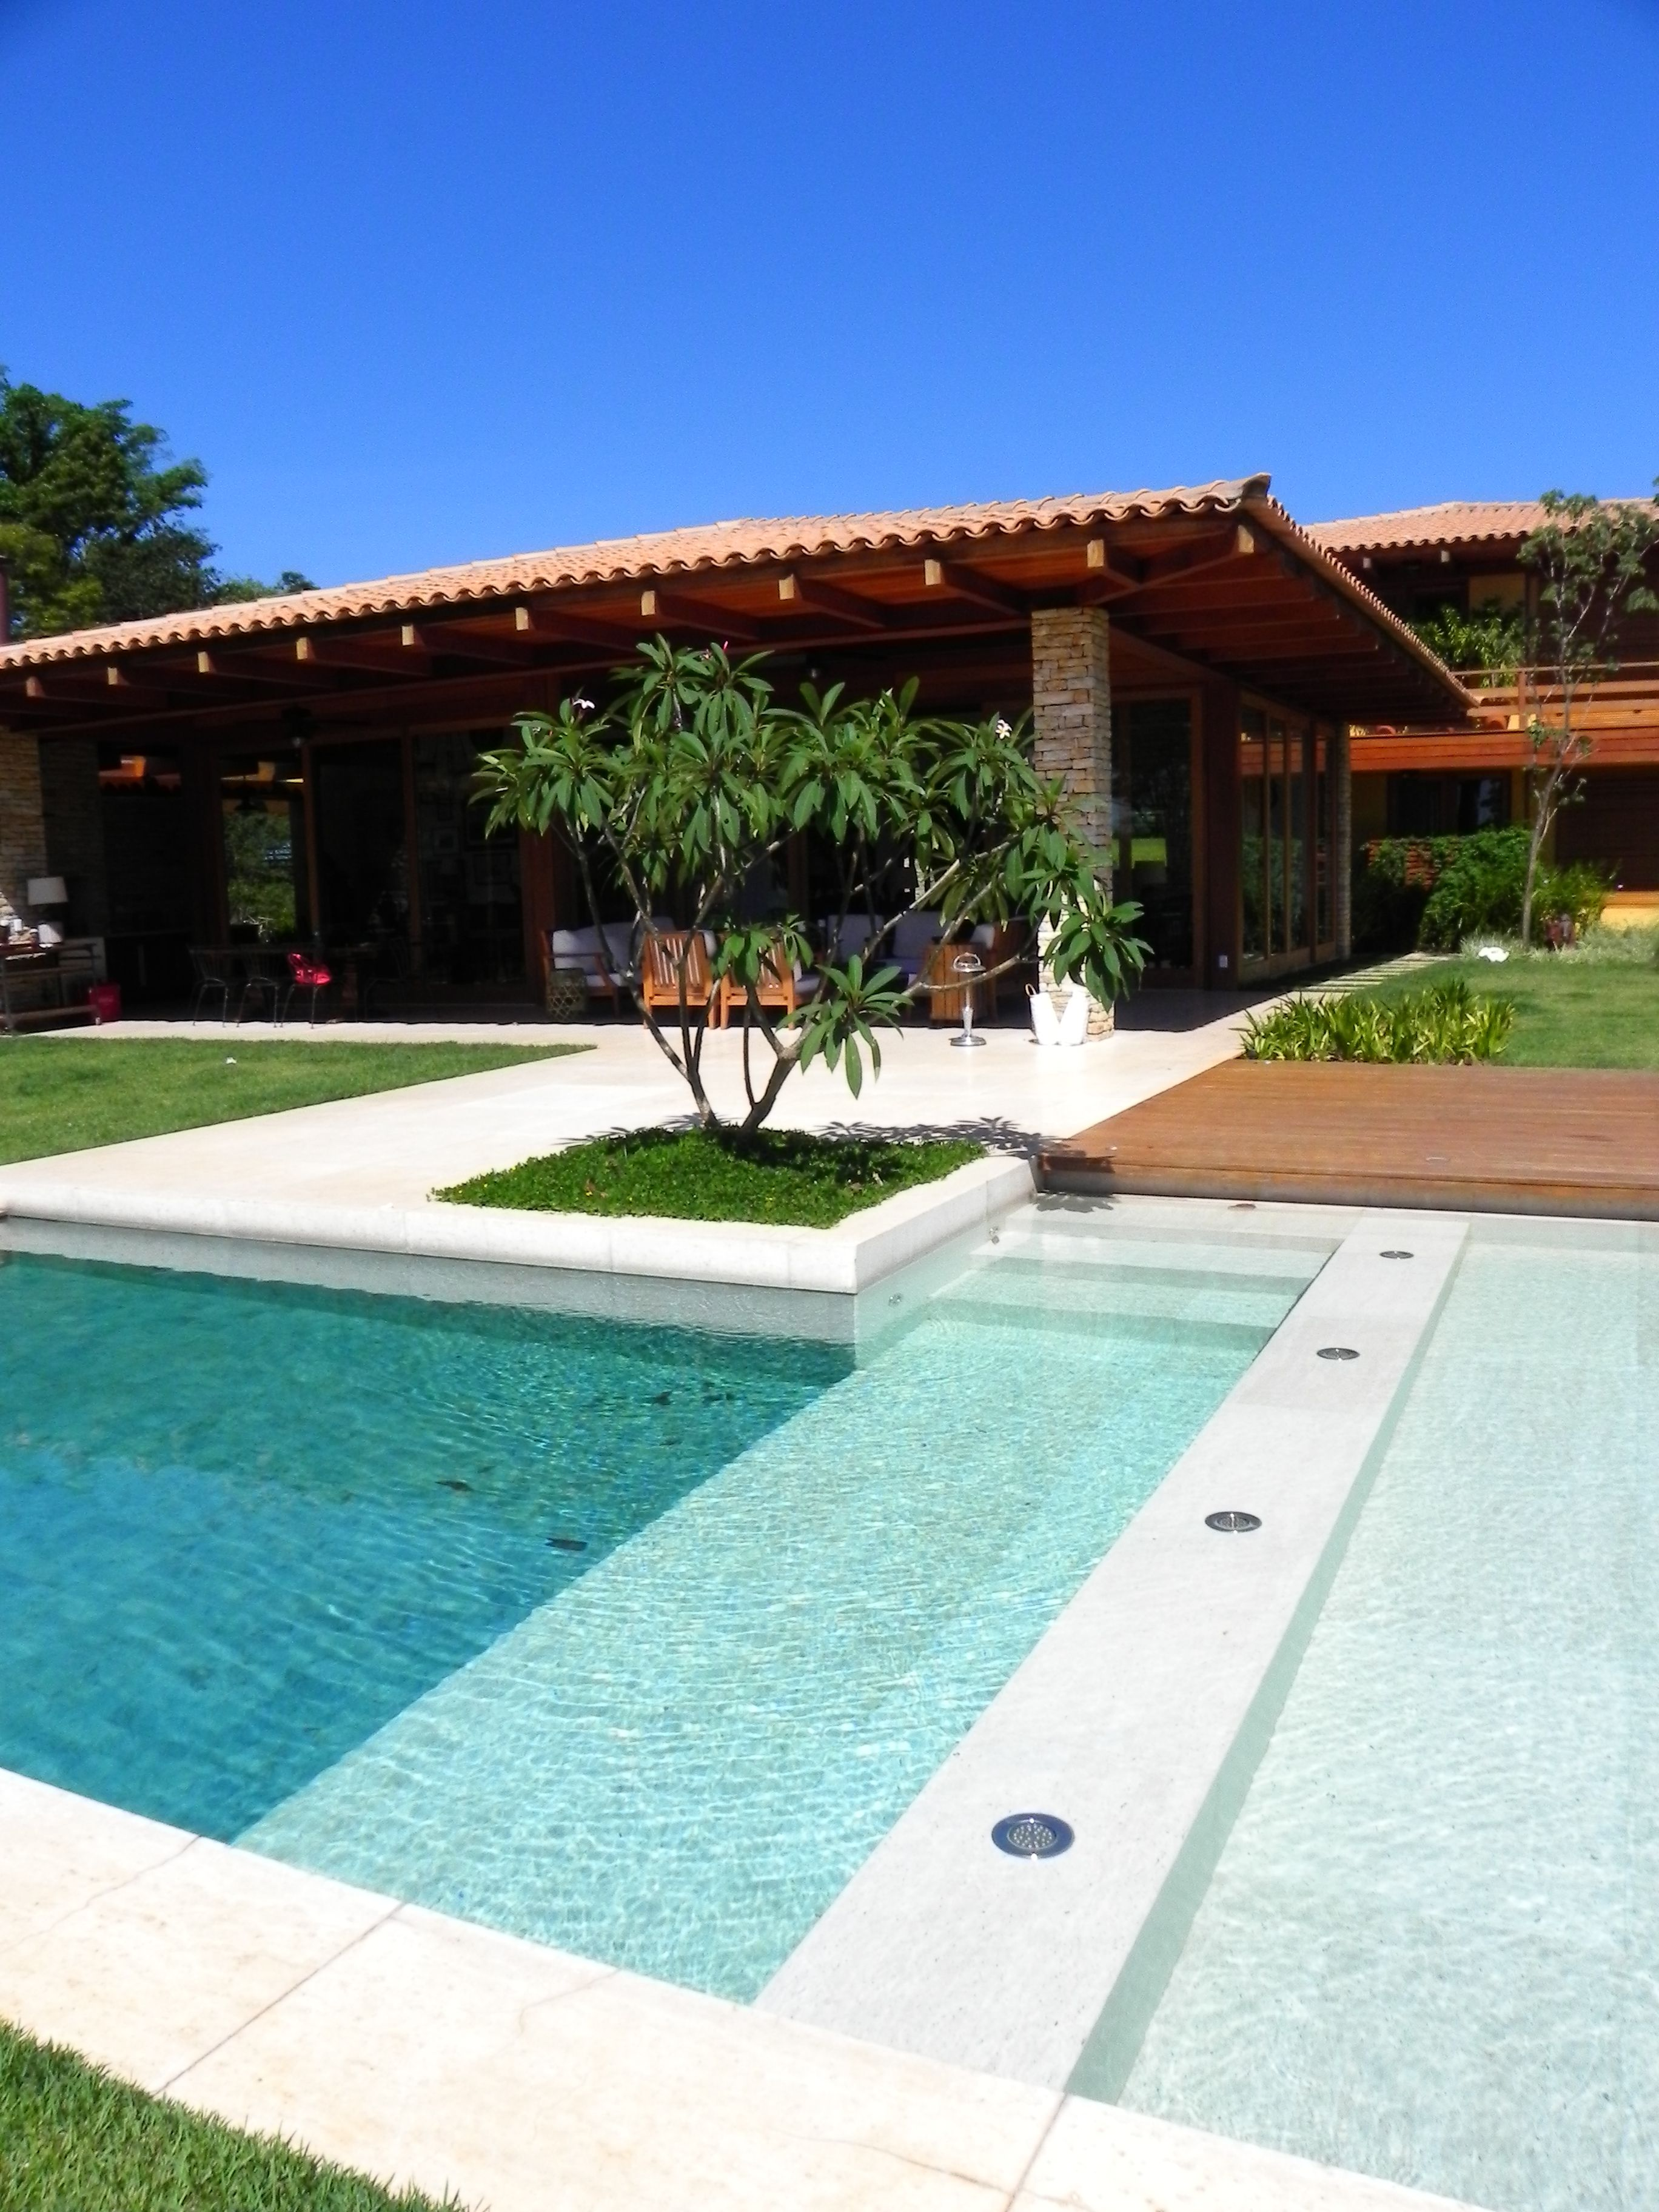 Piscina Design Jacuzzi Where Tree Is Pool Ideas Piscinas Con Deck Piscina